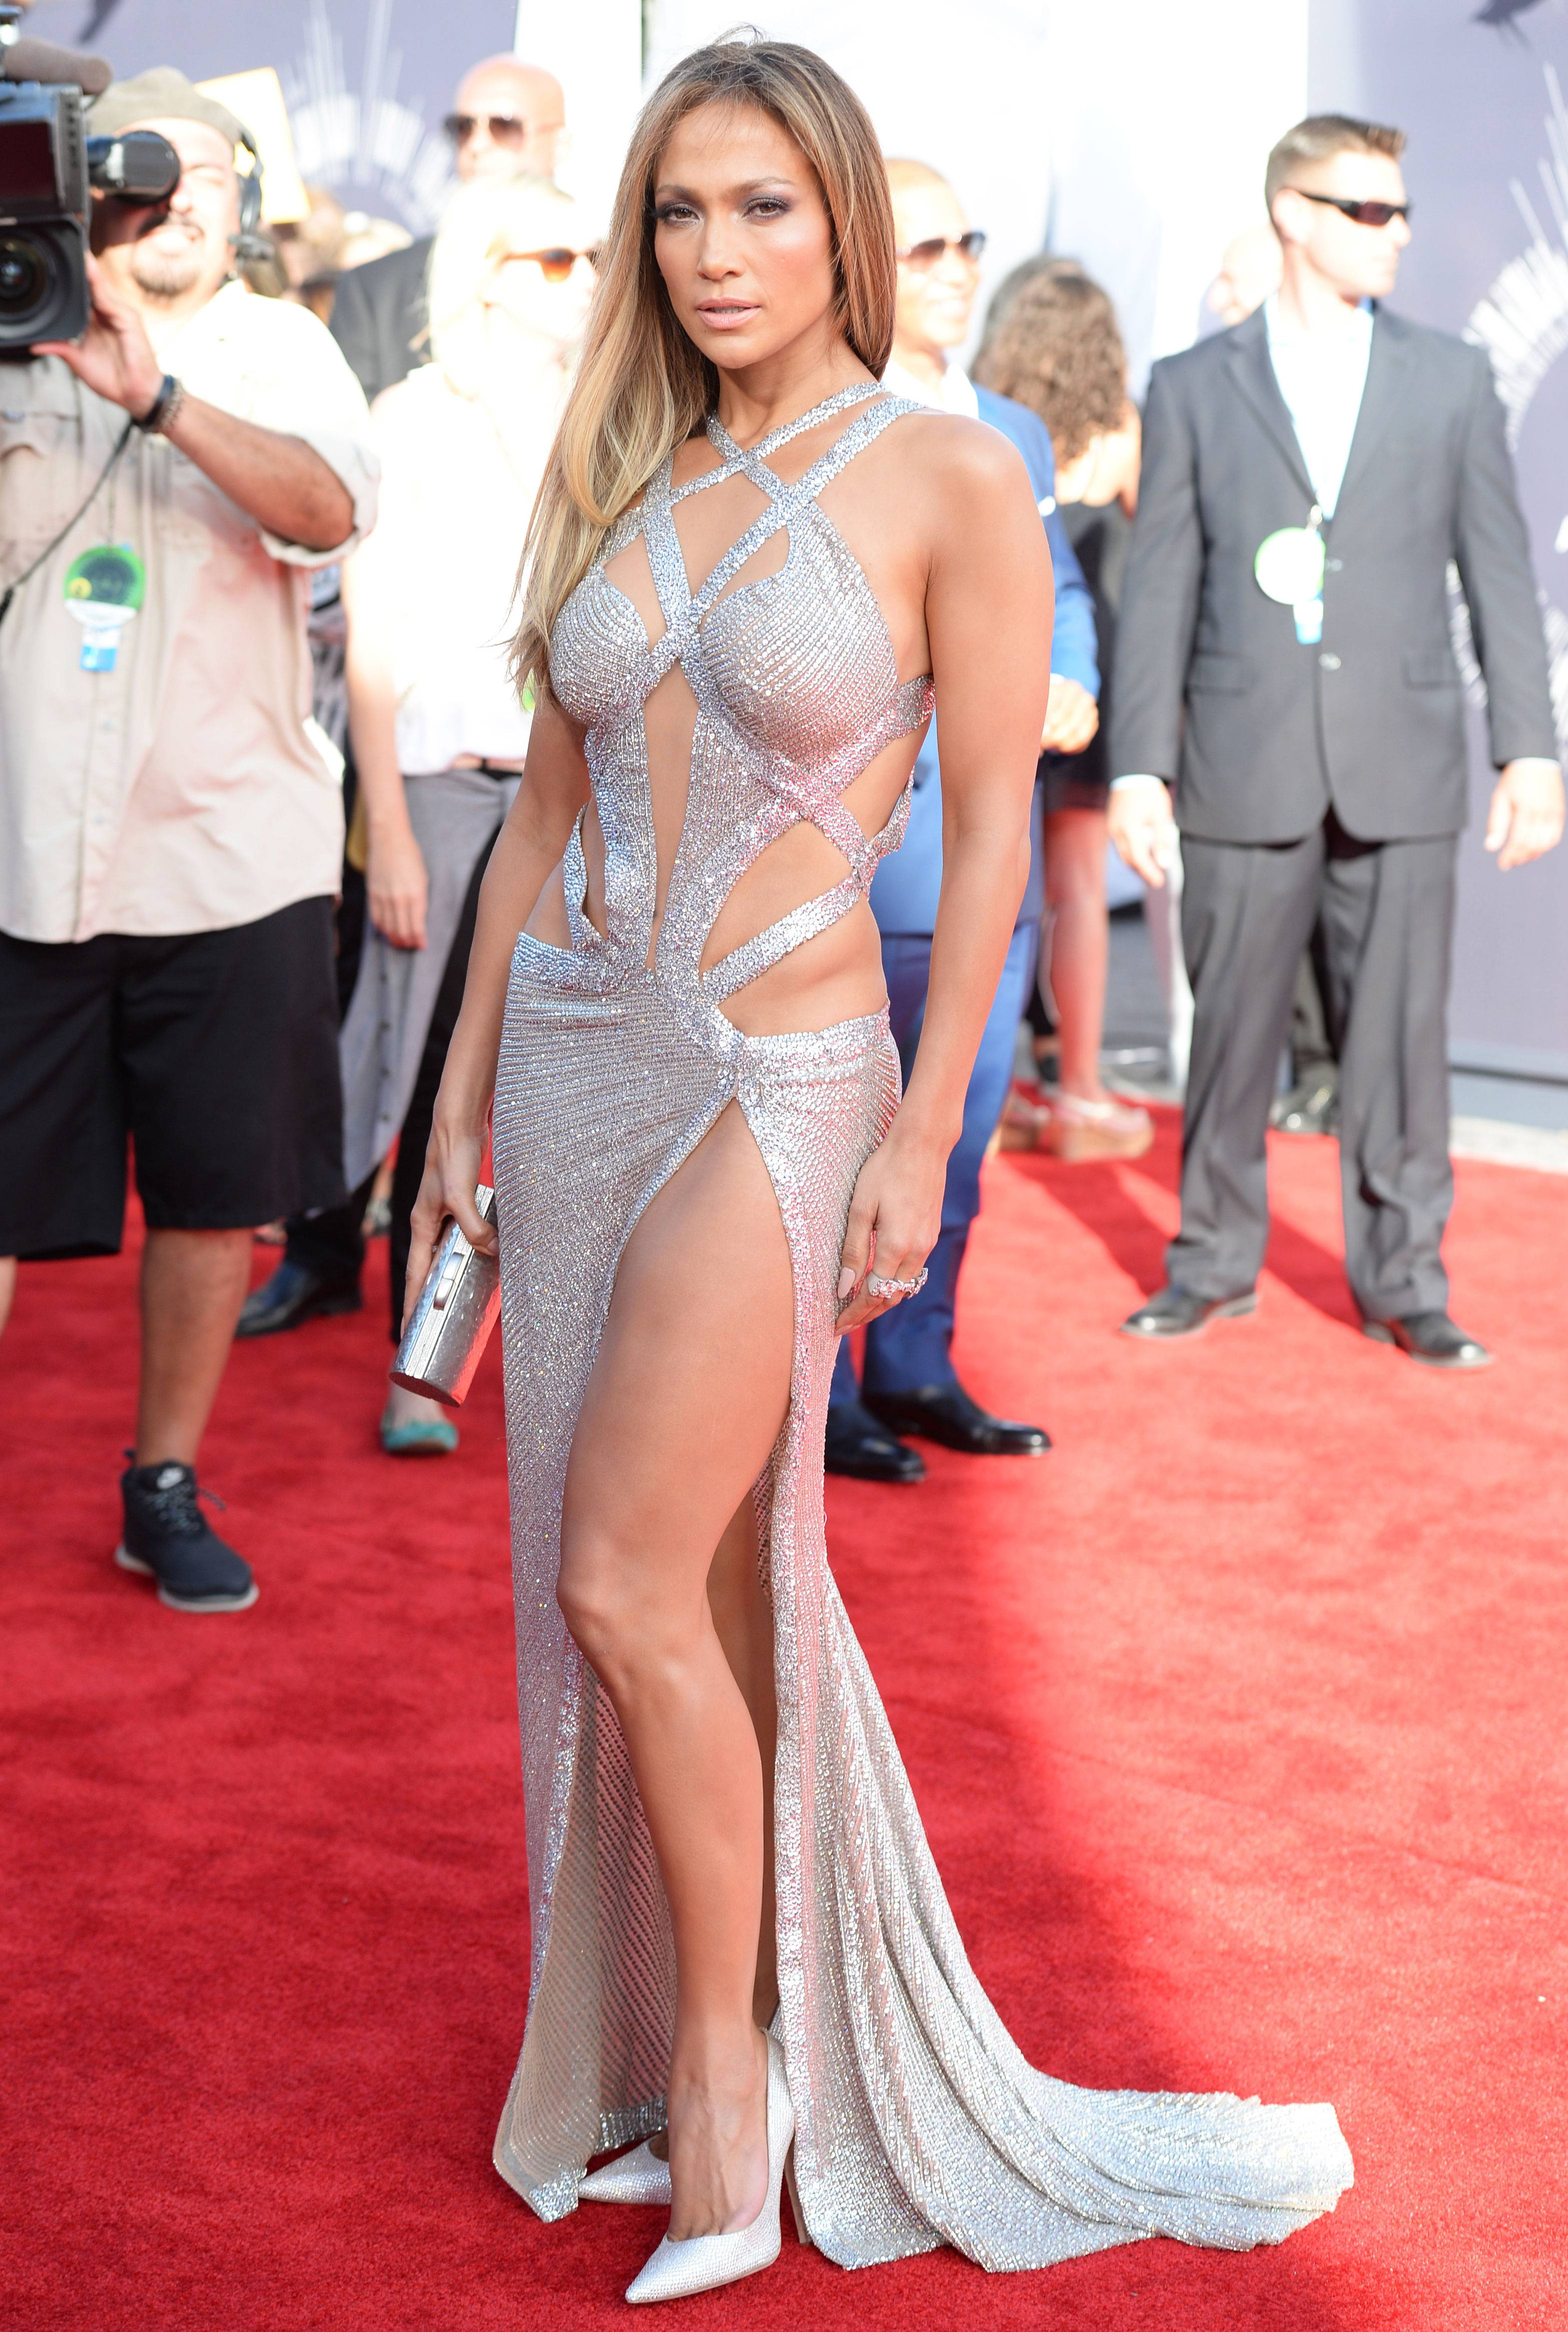 J.Lo glows on the 2014 VMA red carpet in a thigh-high slit dress with strappy, lucid beading.